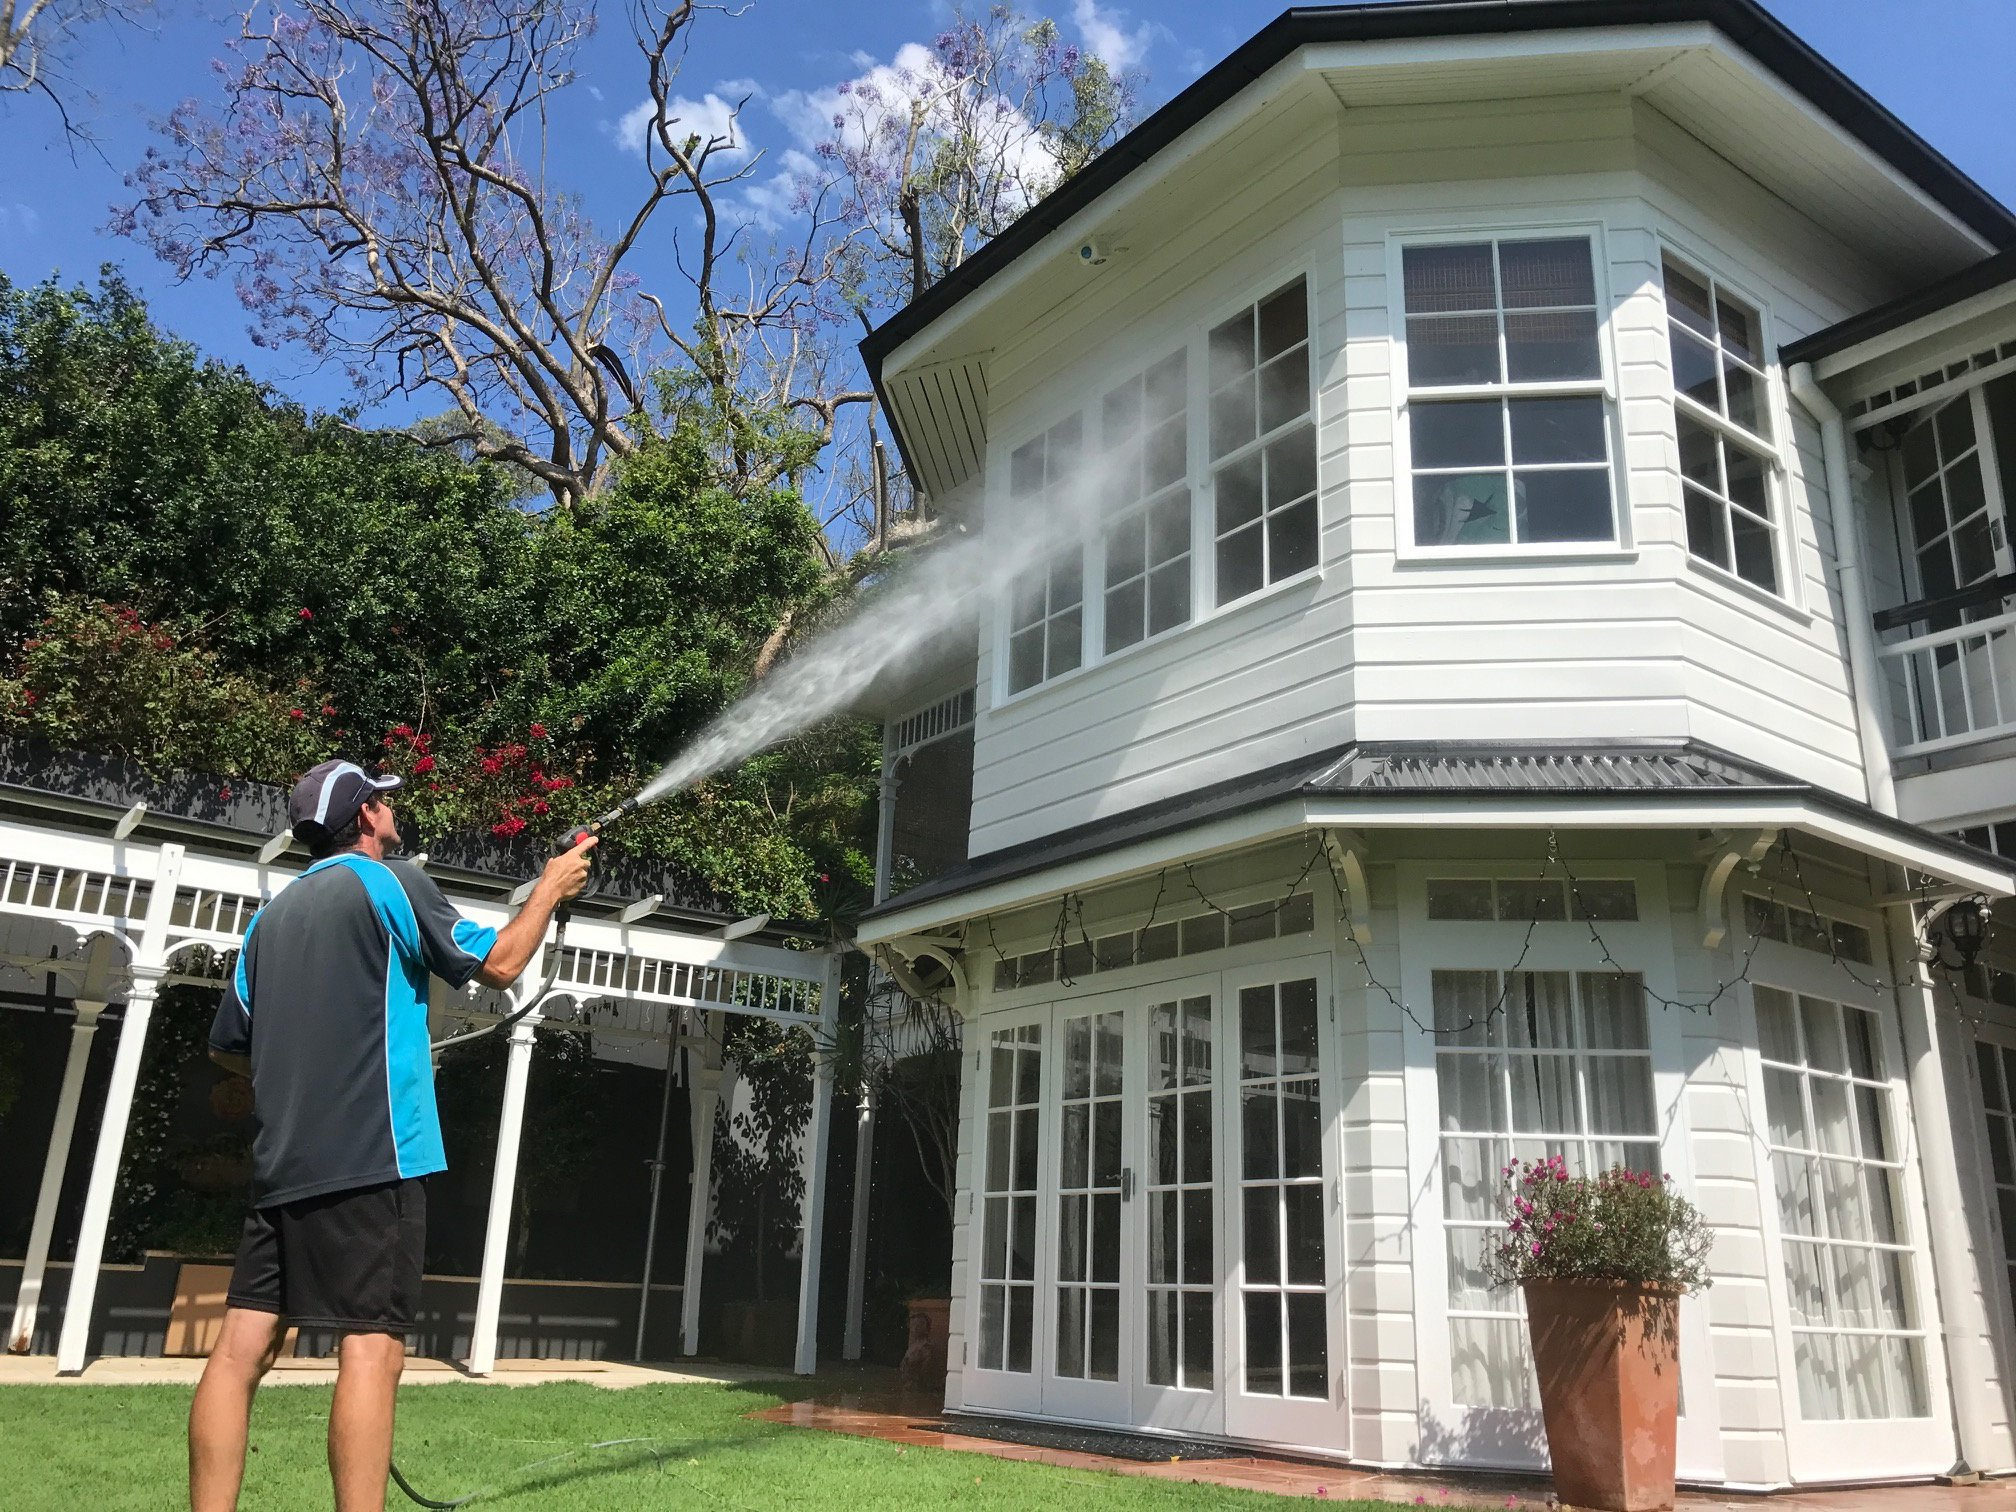 North Lakes Roof washing services